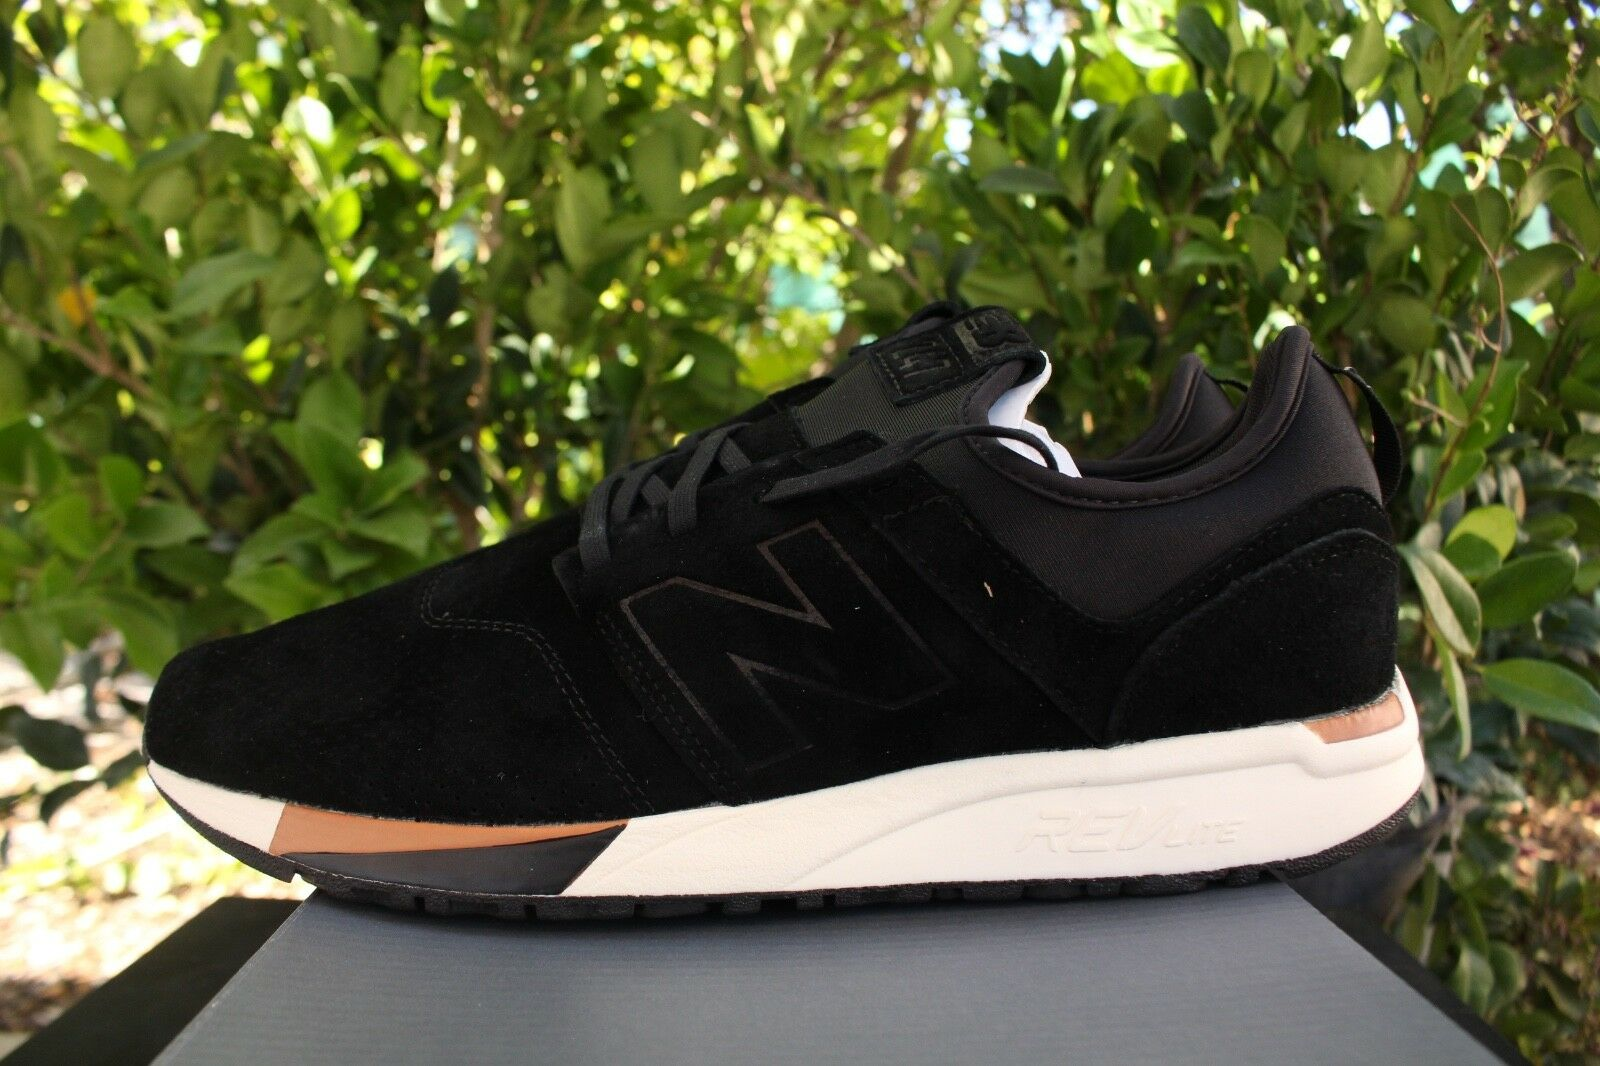 NEW BALANCE 247 SZ 12 BLACK WHITE TAN LUXE 2.0 SUEDE MRL247WU